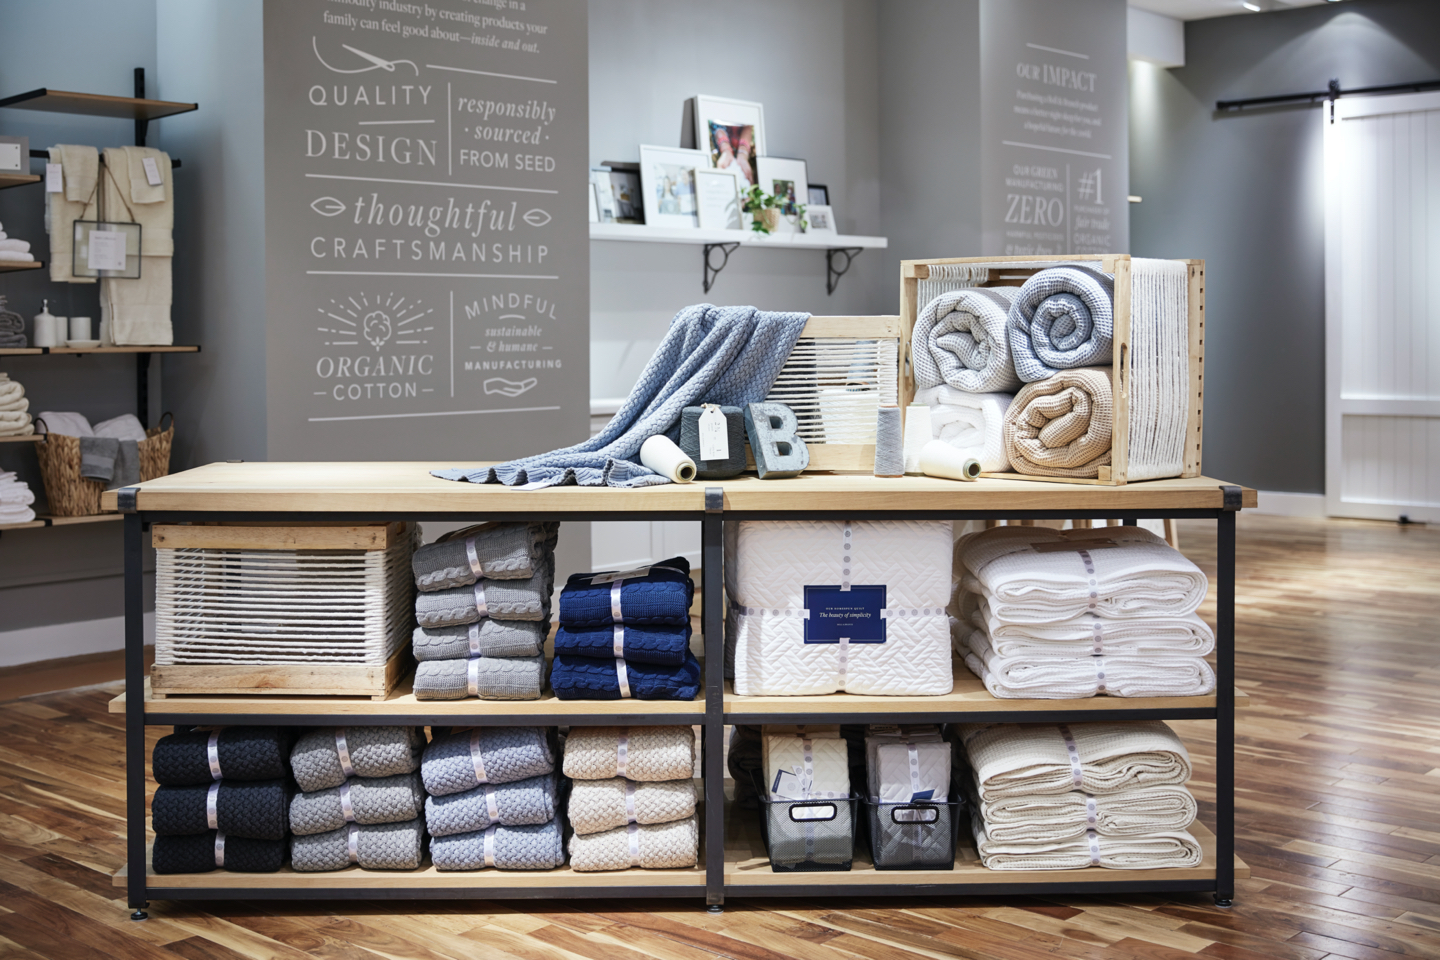 boll and branch store display